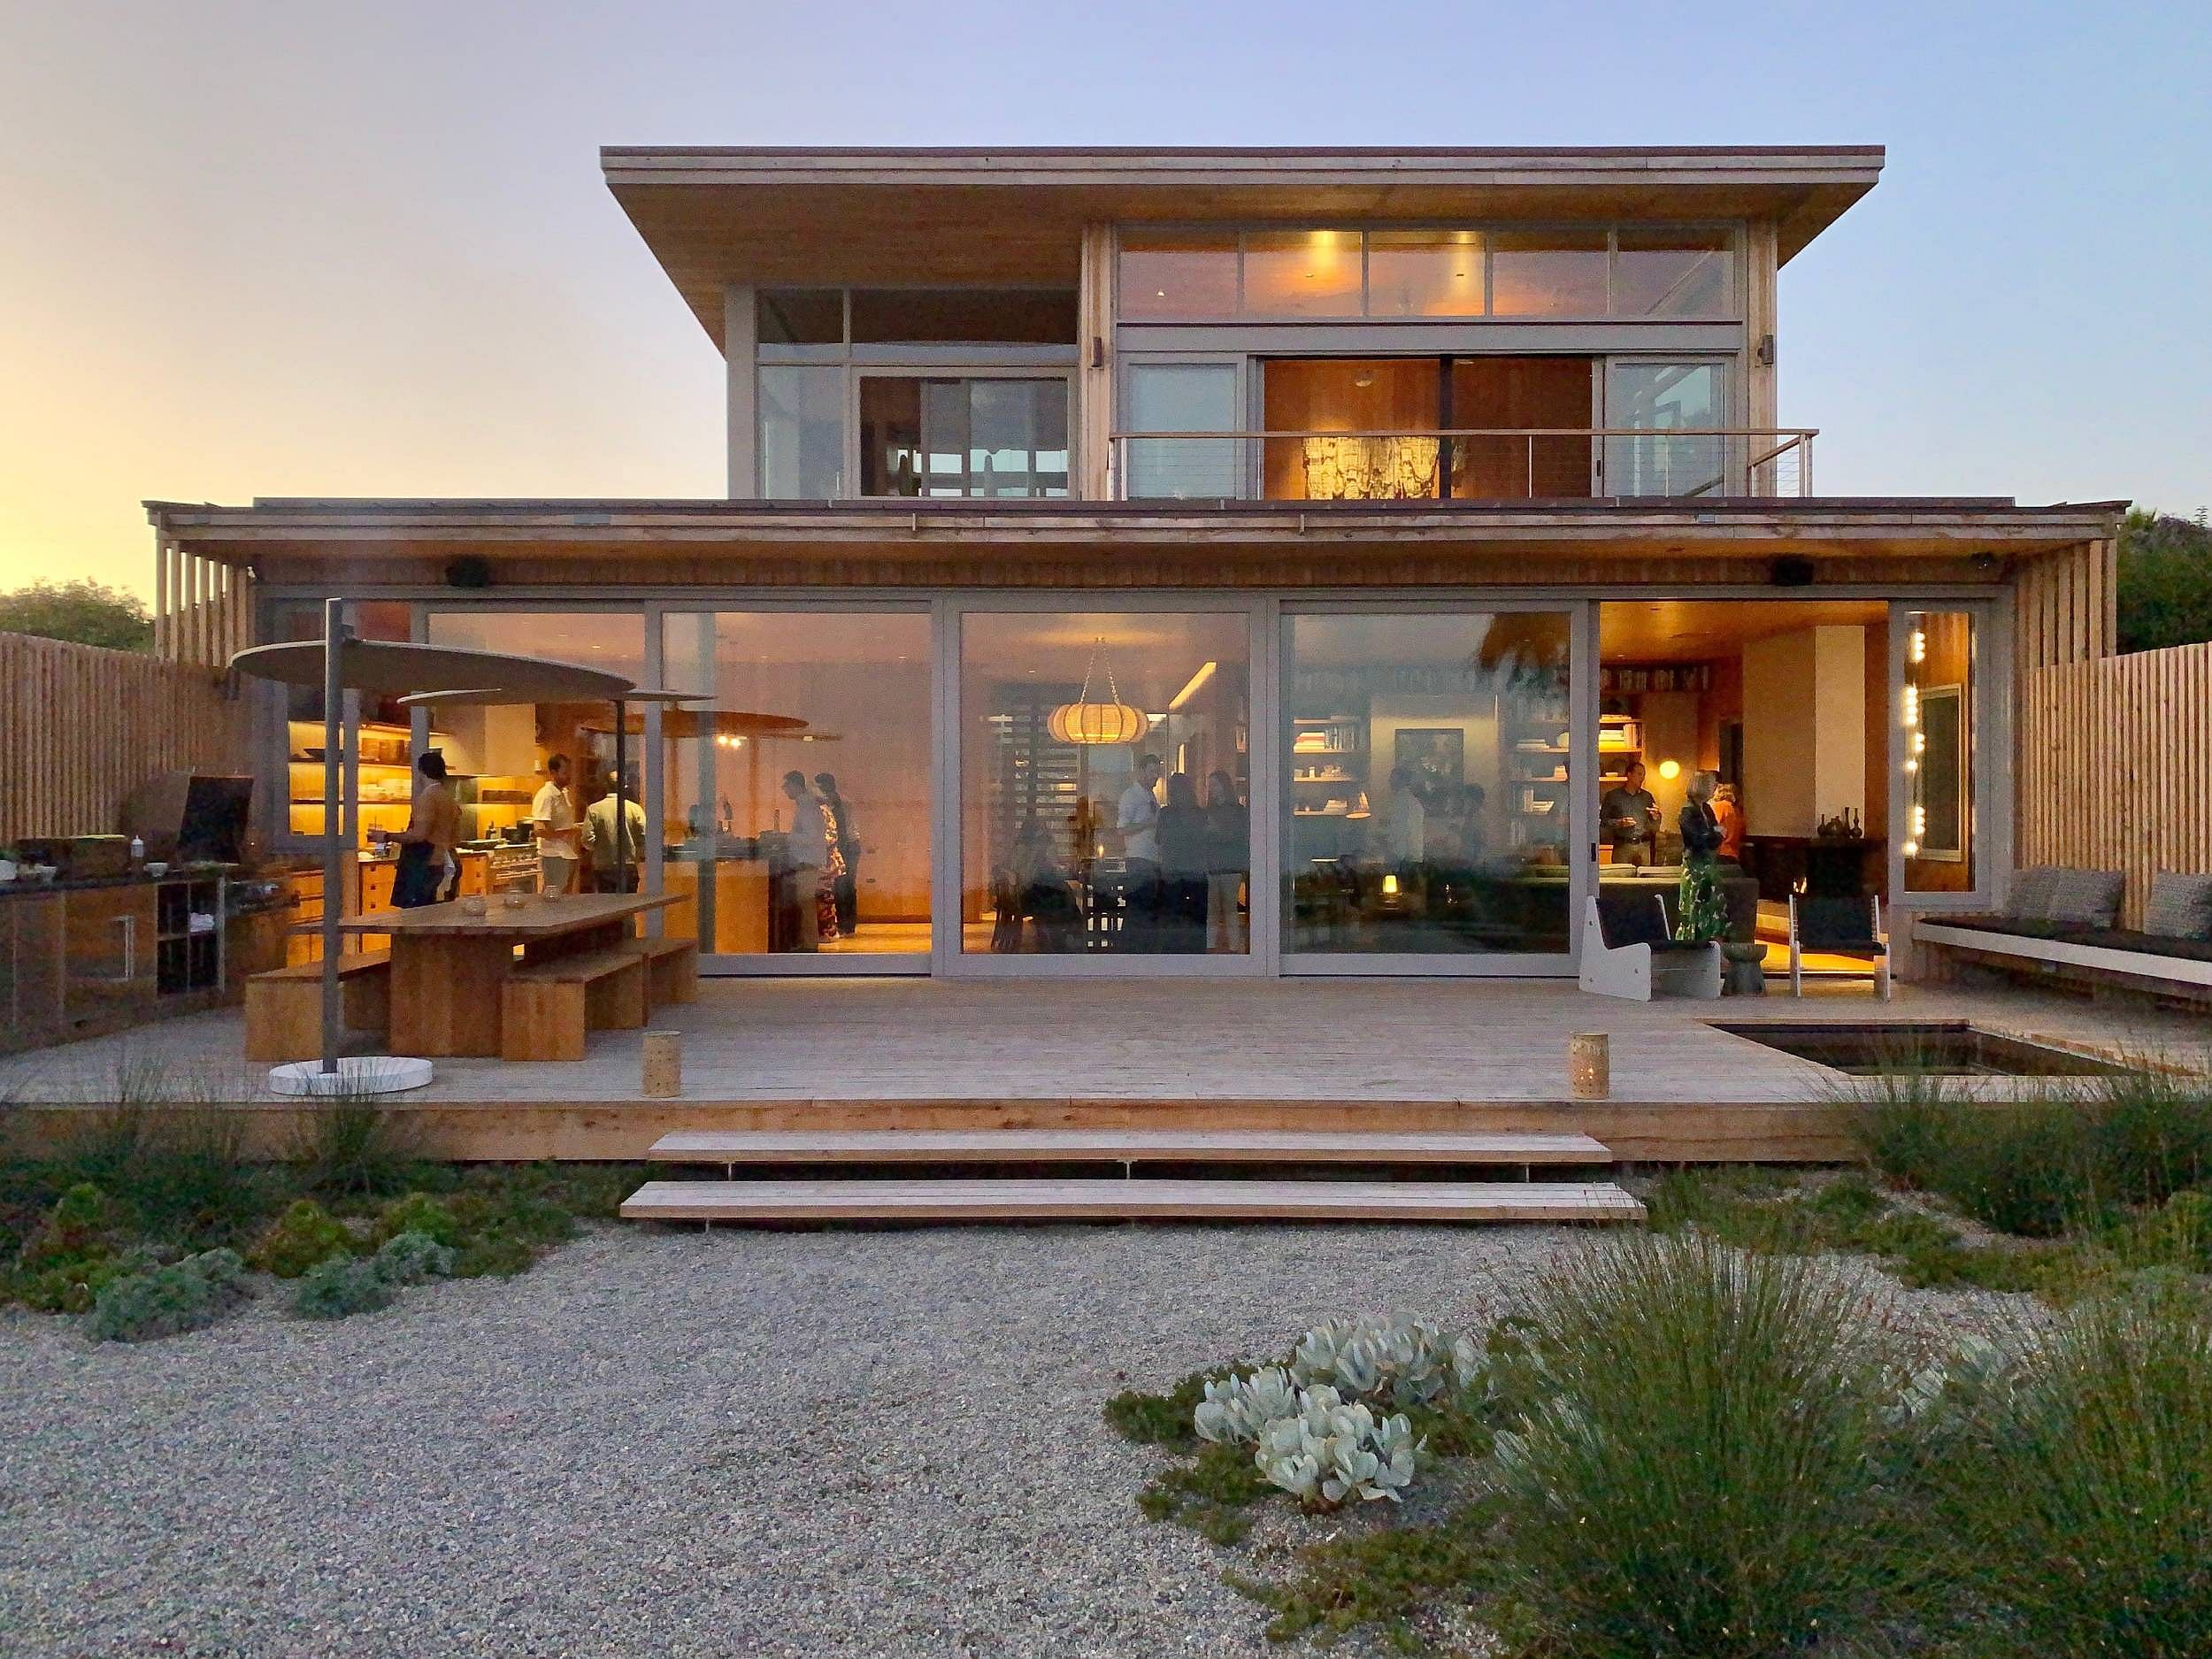 Beautiful rear section of the house with sliding glass doors brings the beach and ocean indoors